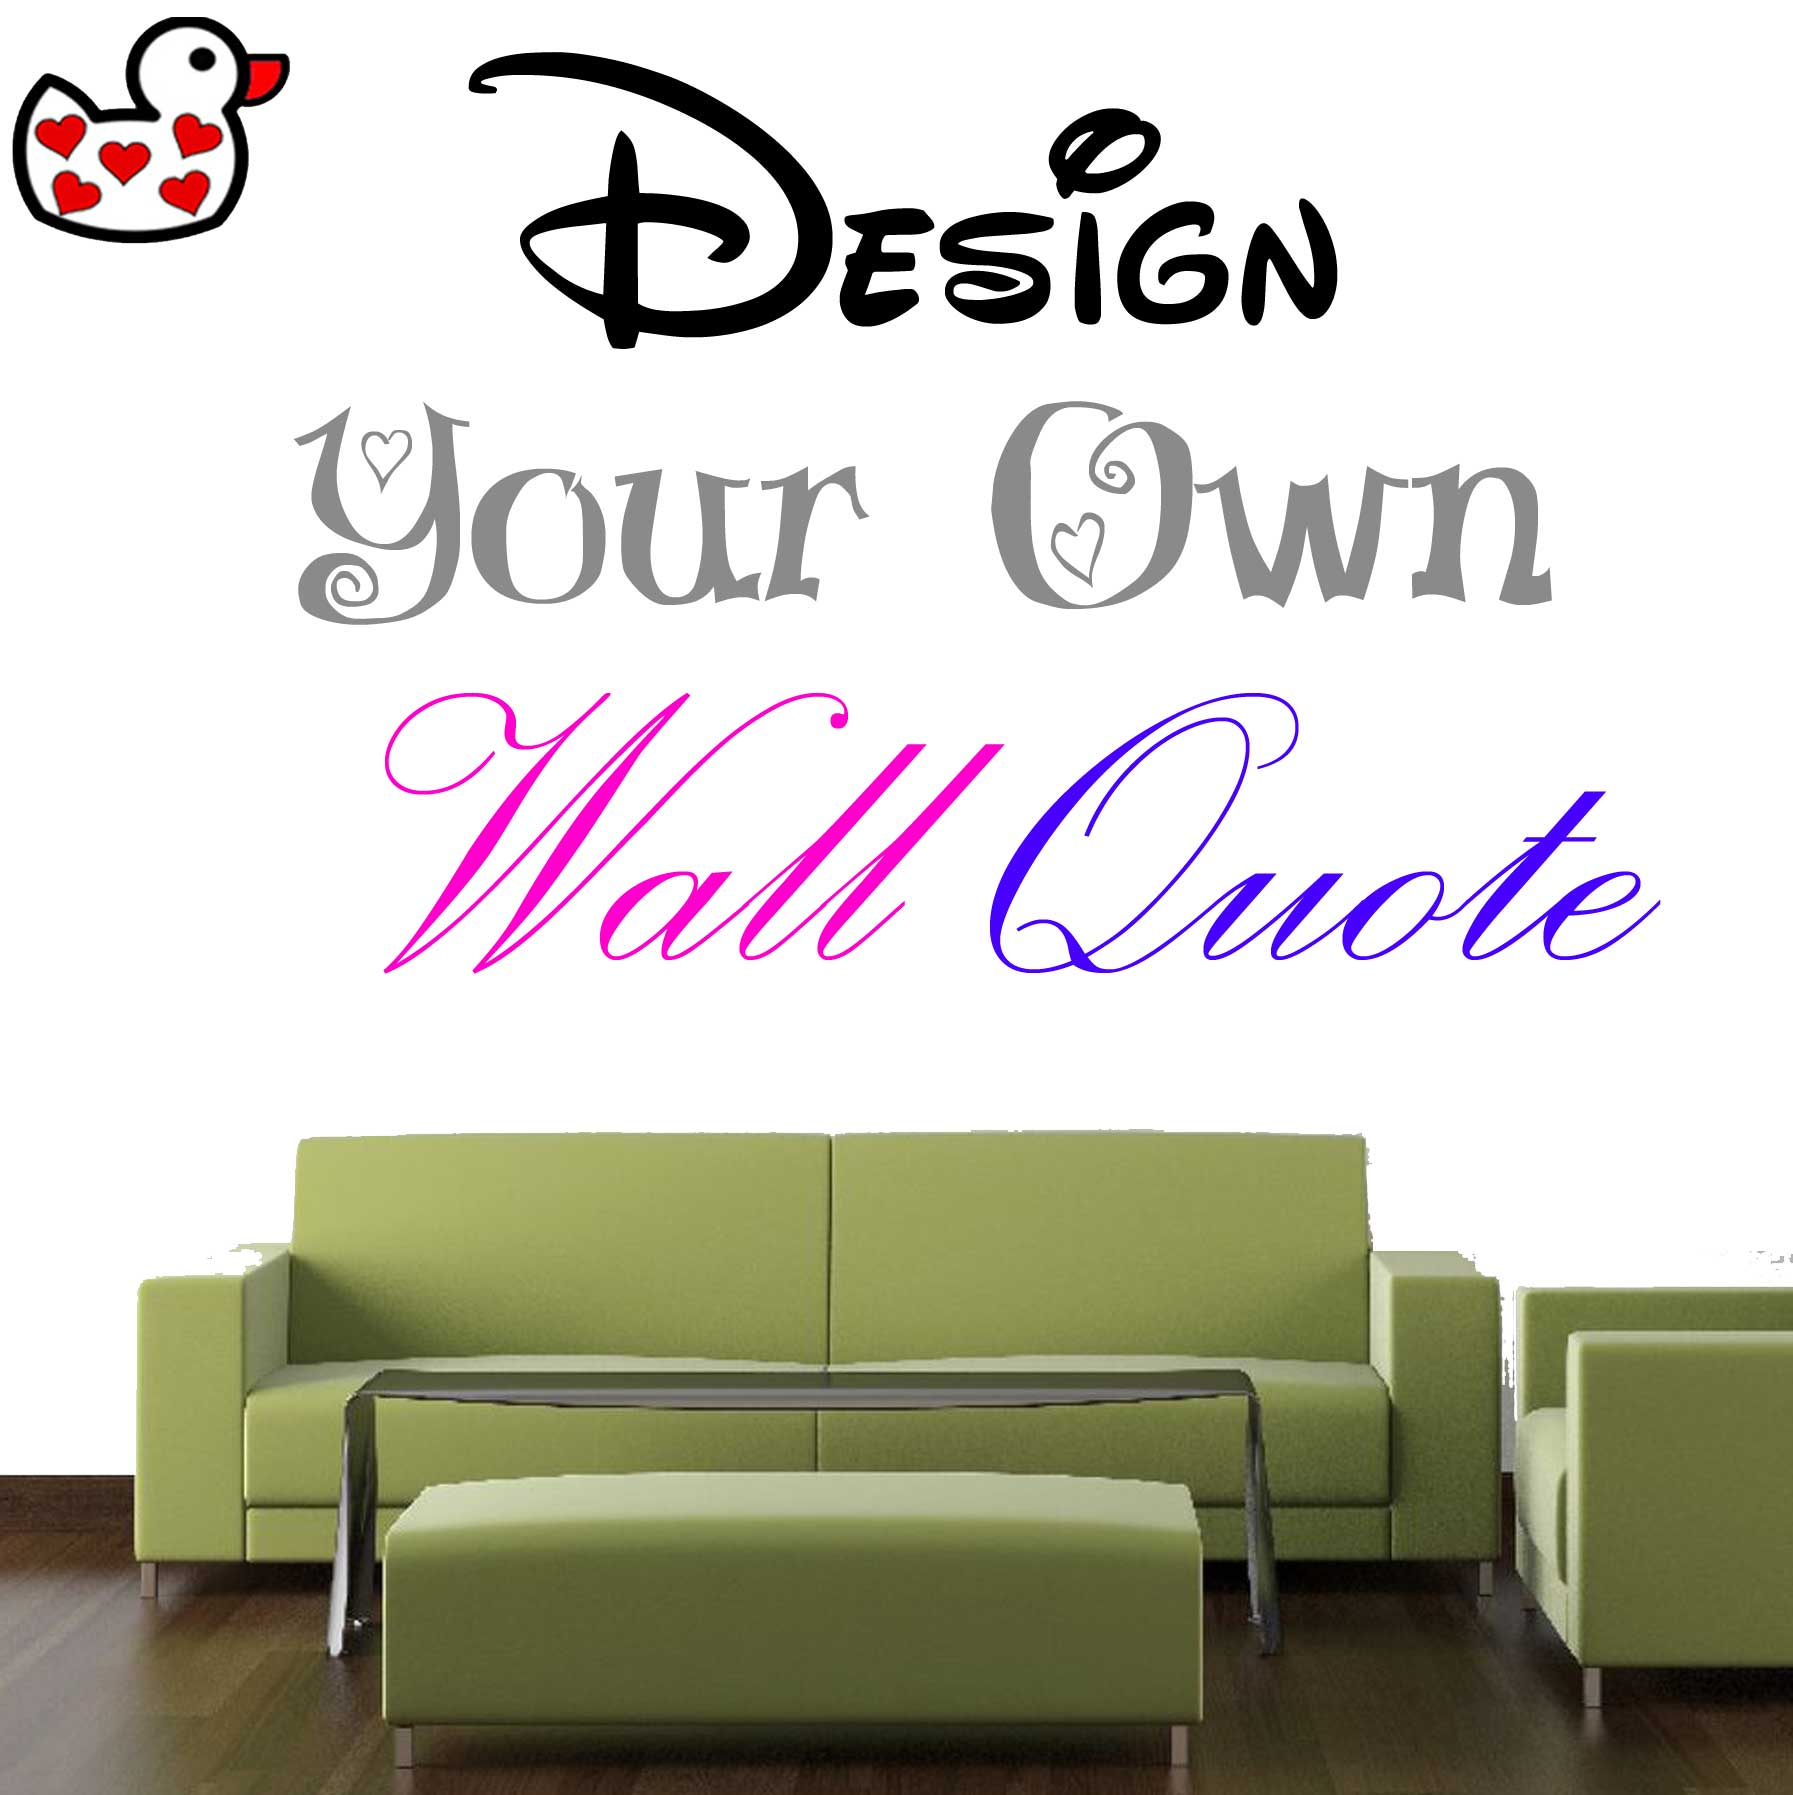 Create Your Own Quotes On Pictures: Design Your Own Quotes. QuotesGram